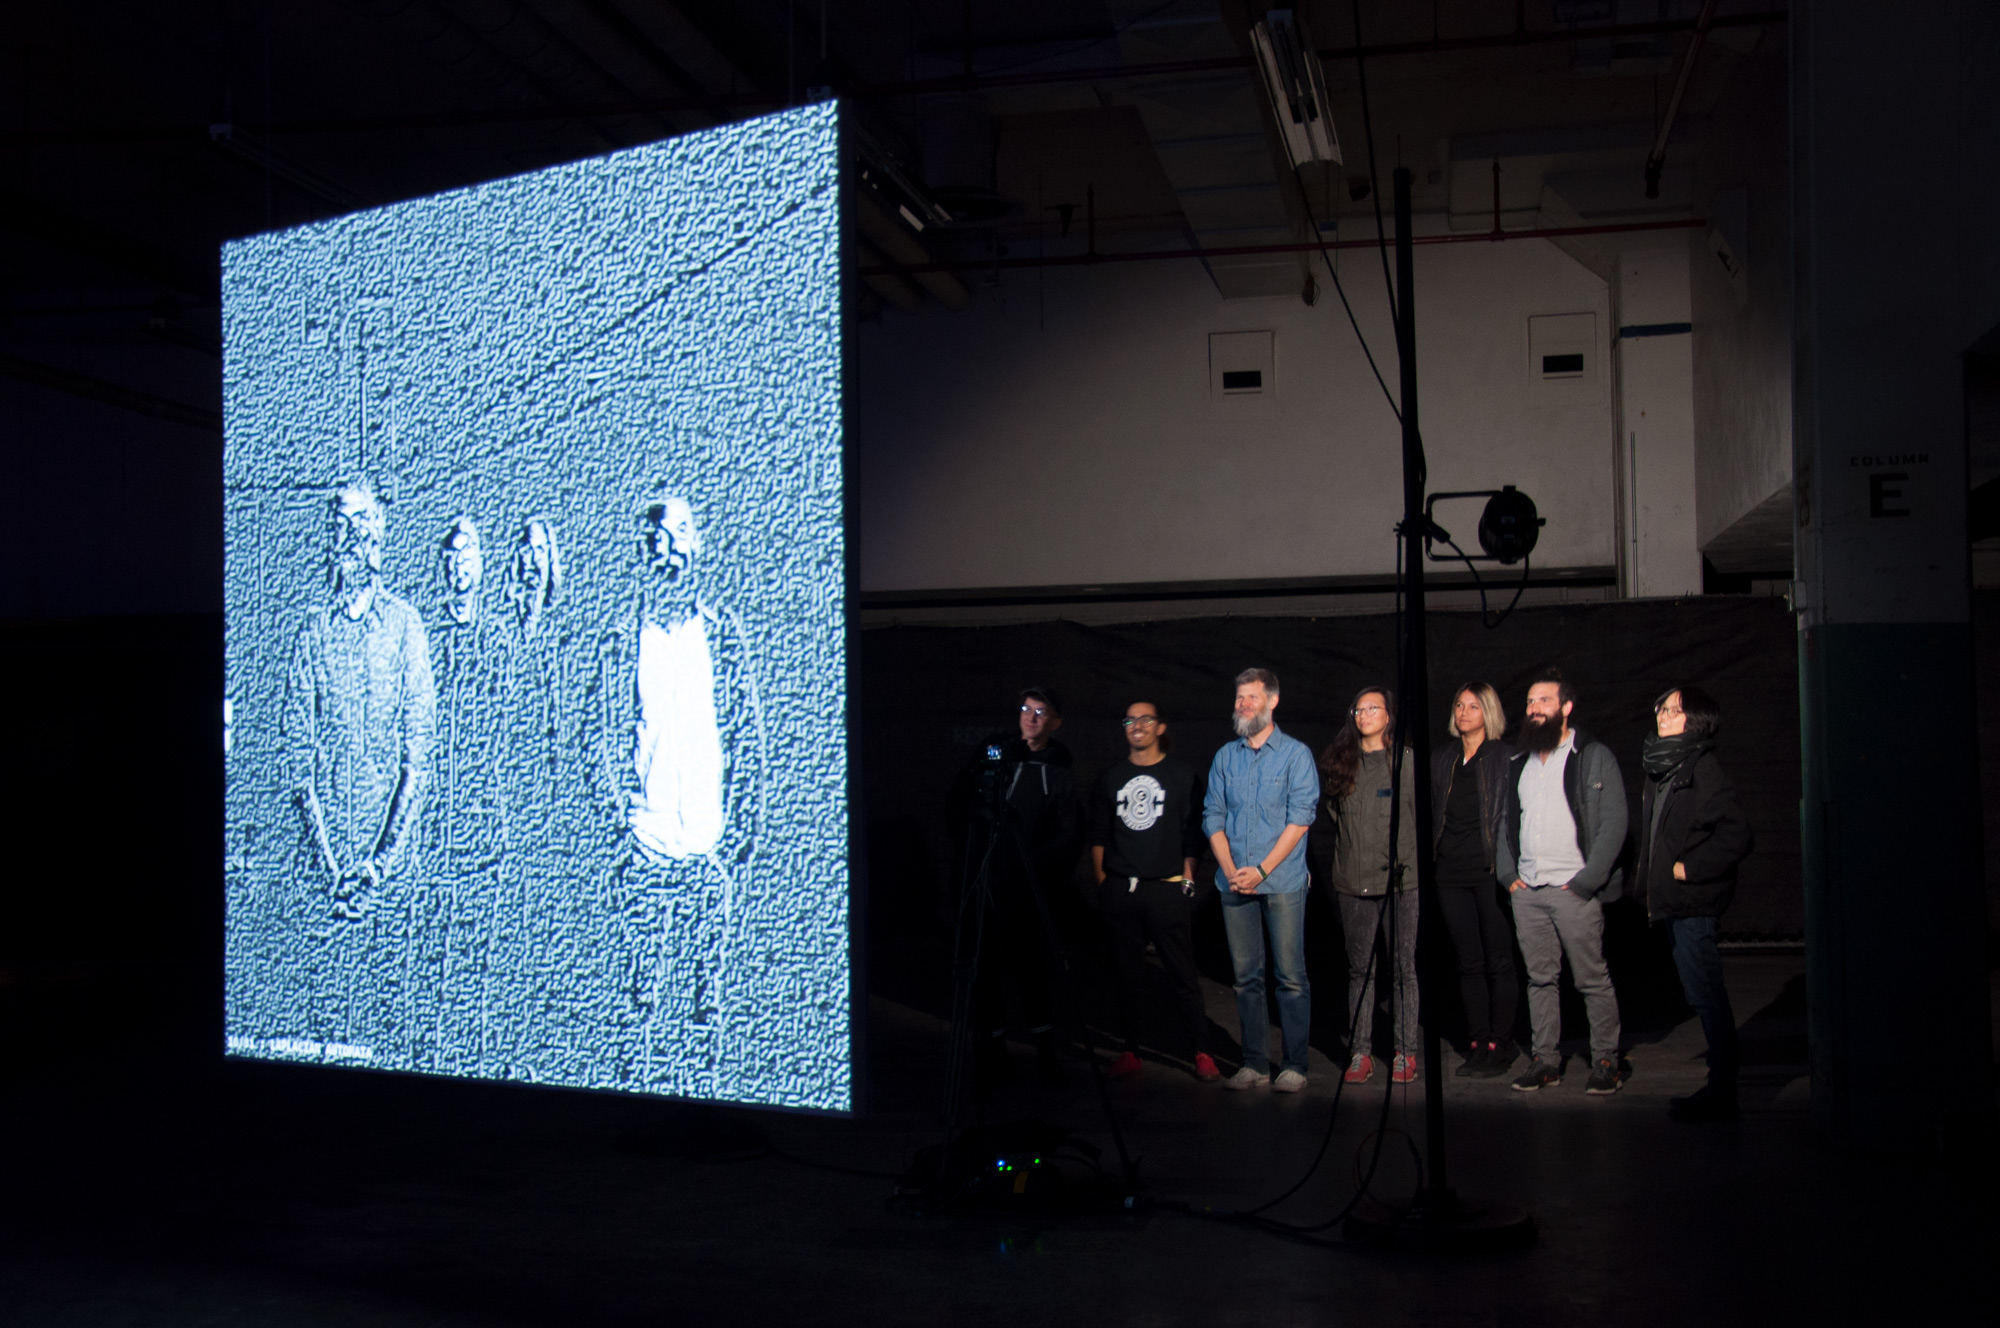 Seven people looking at a filtered projection of themselves on a screen.